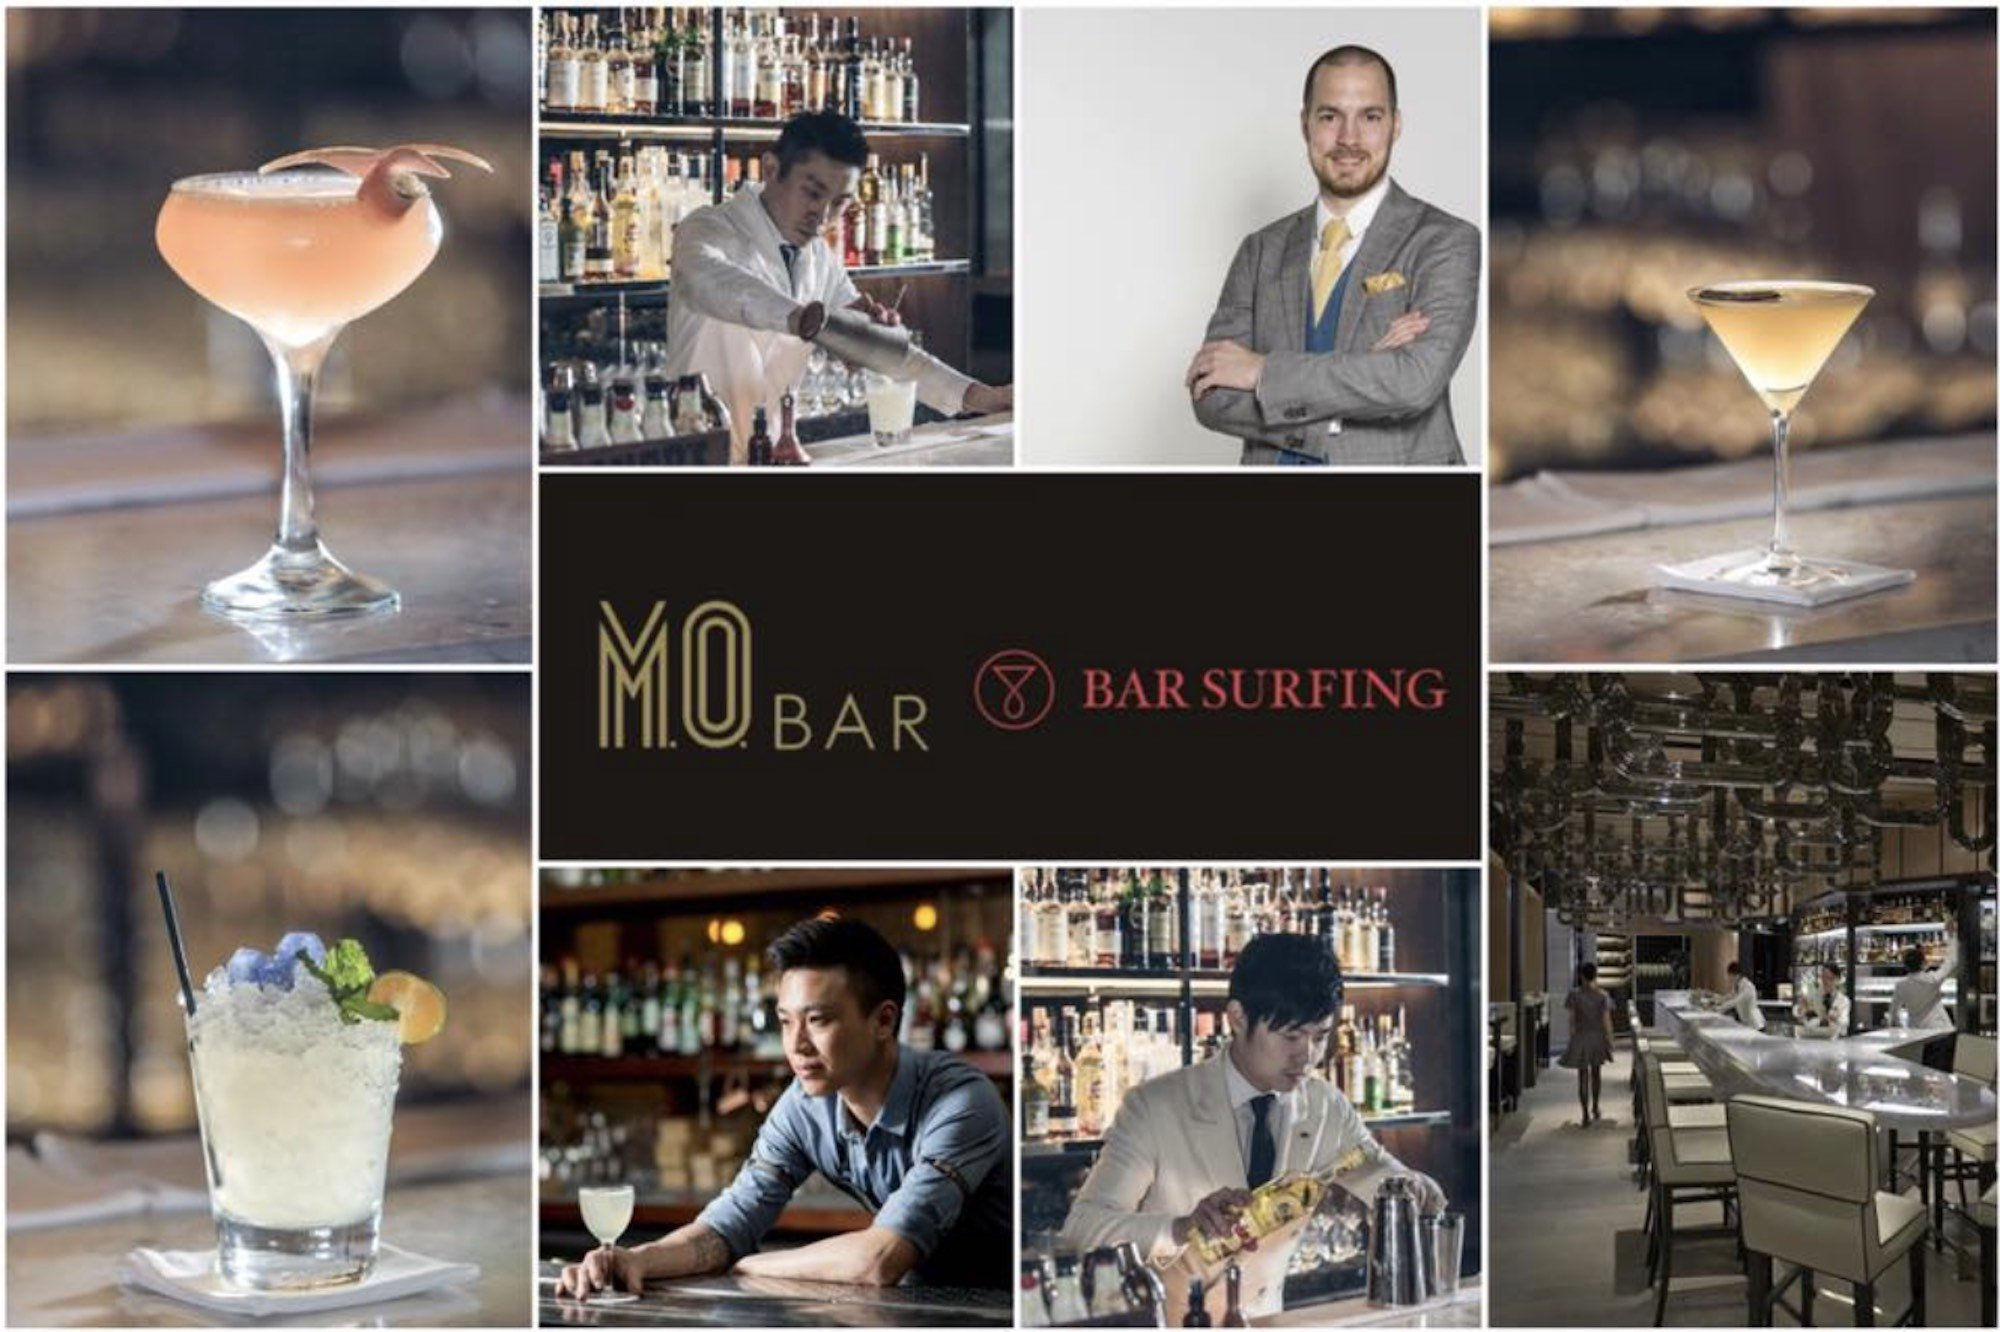 M.O. BAR (Taiwan) - jose jeuland photographer sinagpore